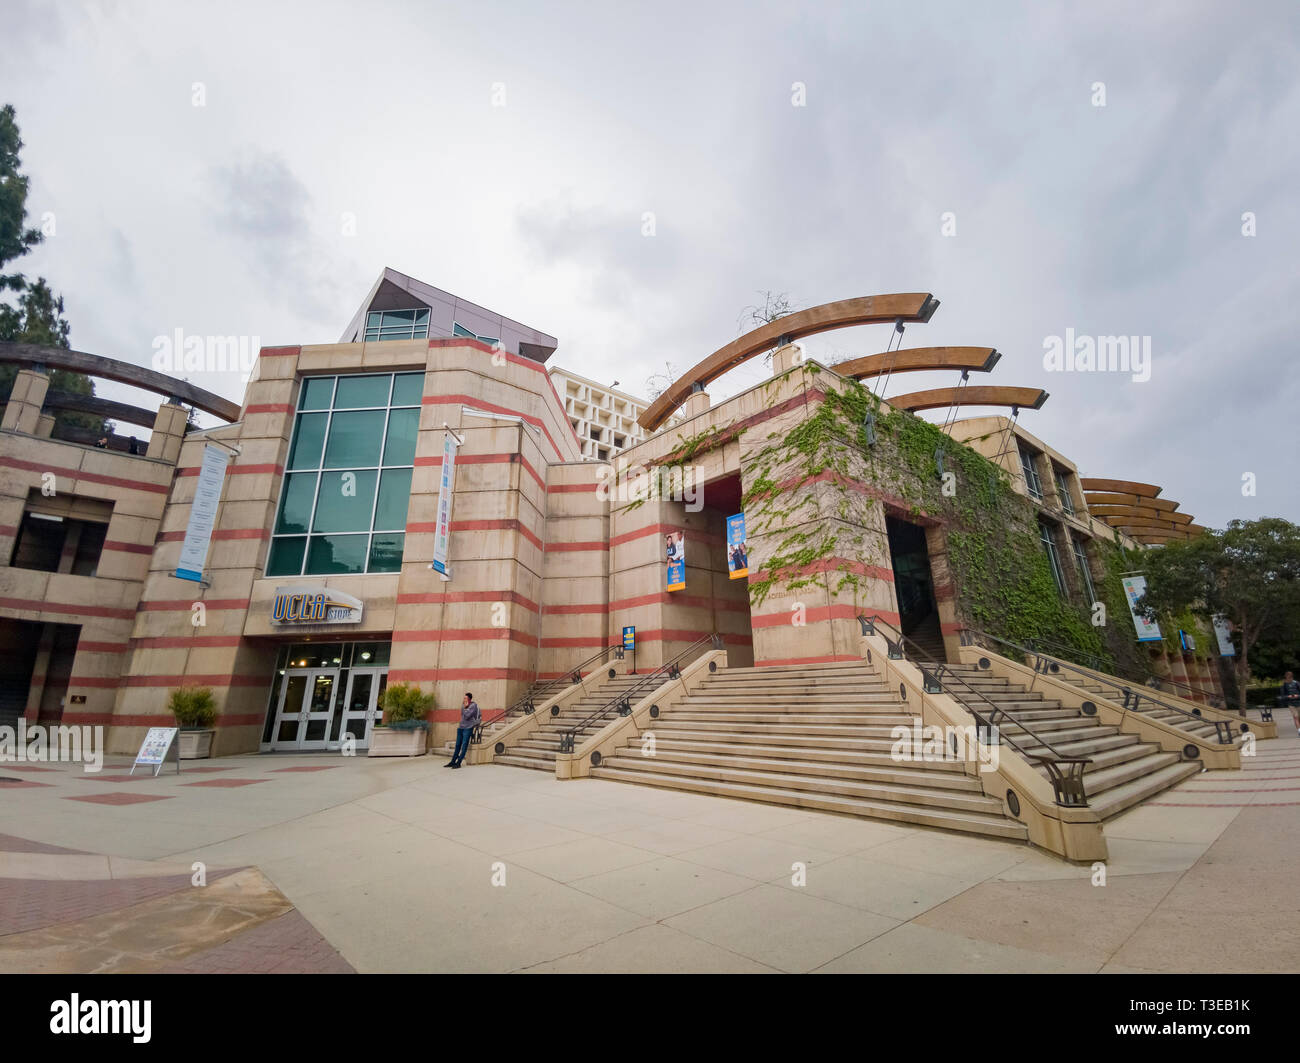 Los Angeles, APR 4: Book store of UCLA on APR 4, 2019 at Los Angeles, California - Stock Image